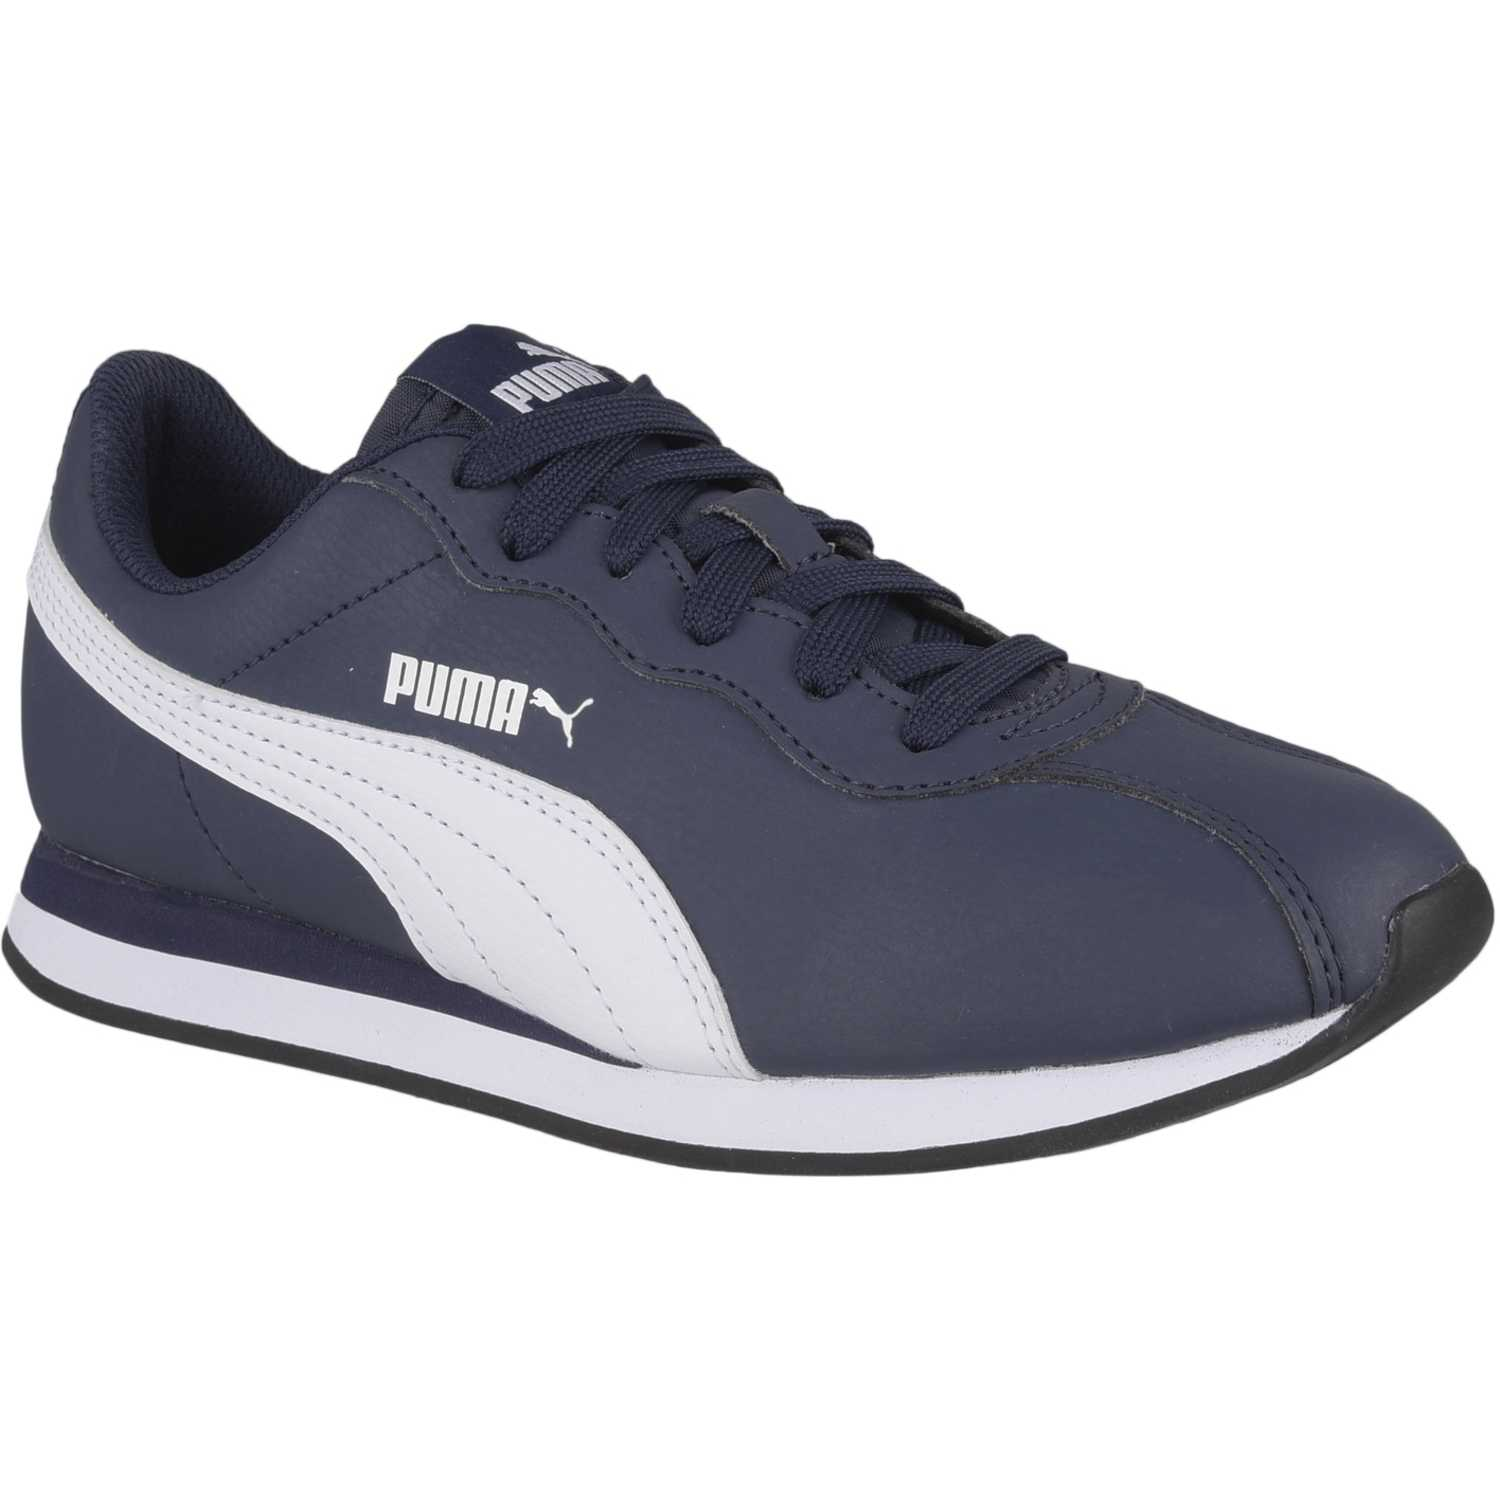 Puma Puma Turin II Jr Azul / blanco Walking